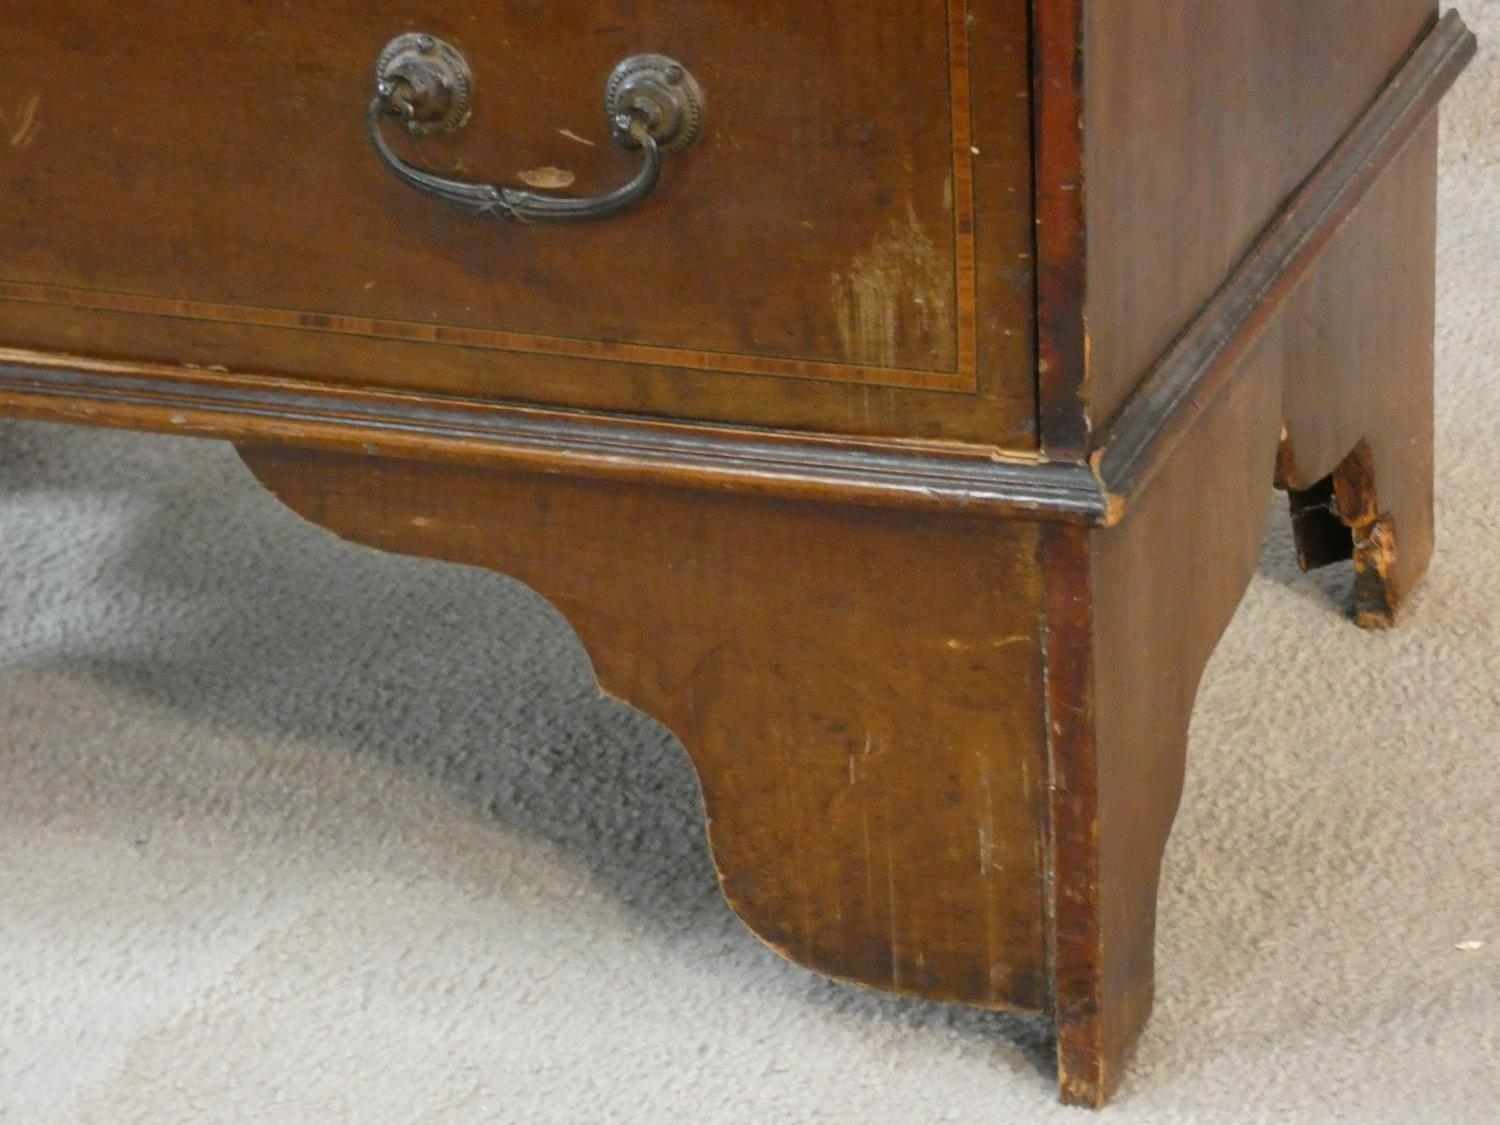 An Edwardian mahogany bureau with satinwood stringing and shell inlay to the frieze. H.95 W.61 D. - Image 6 of 6